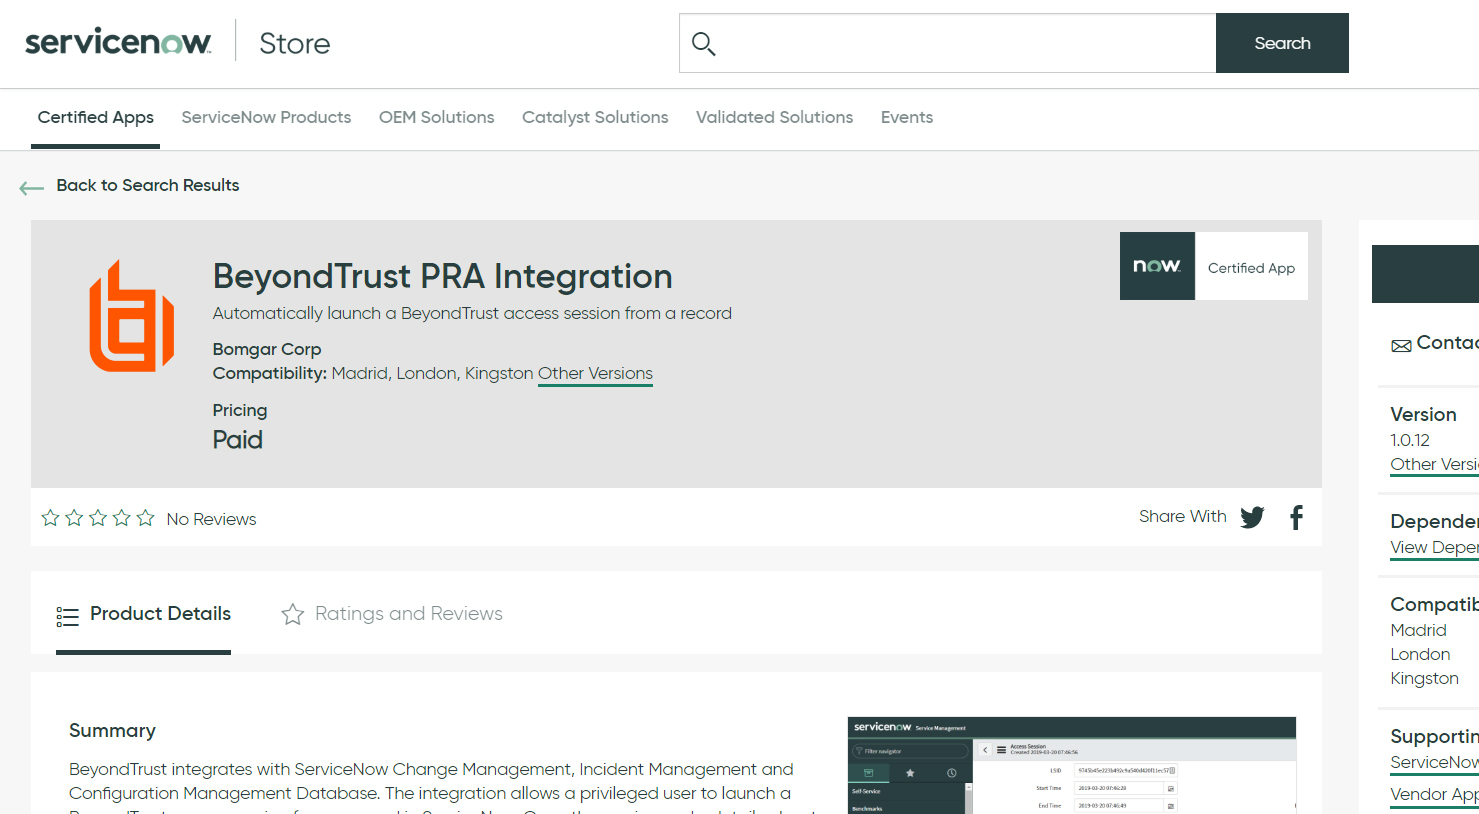 Configure ServiceNow for Integration with BeyondTrust PRA